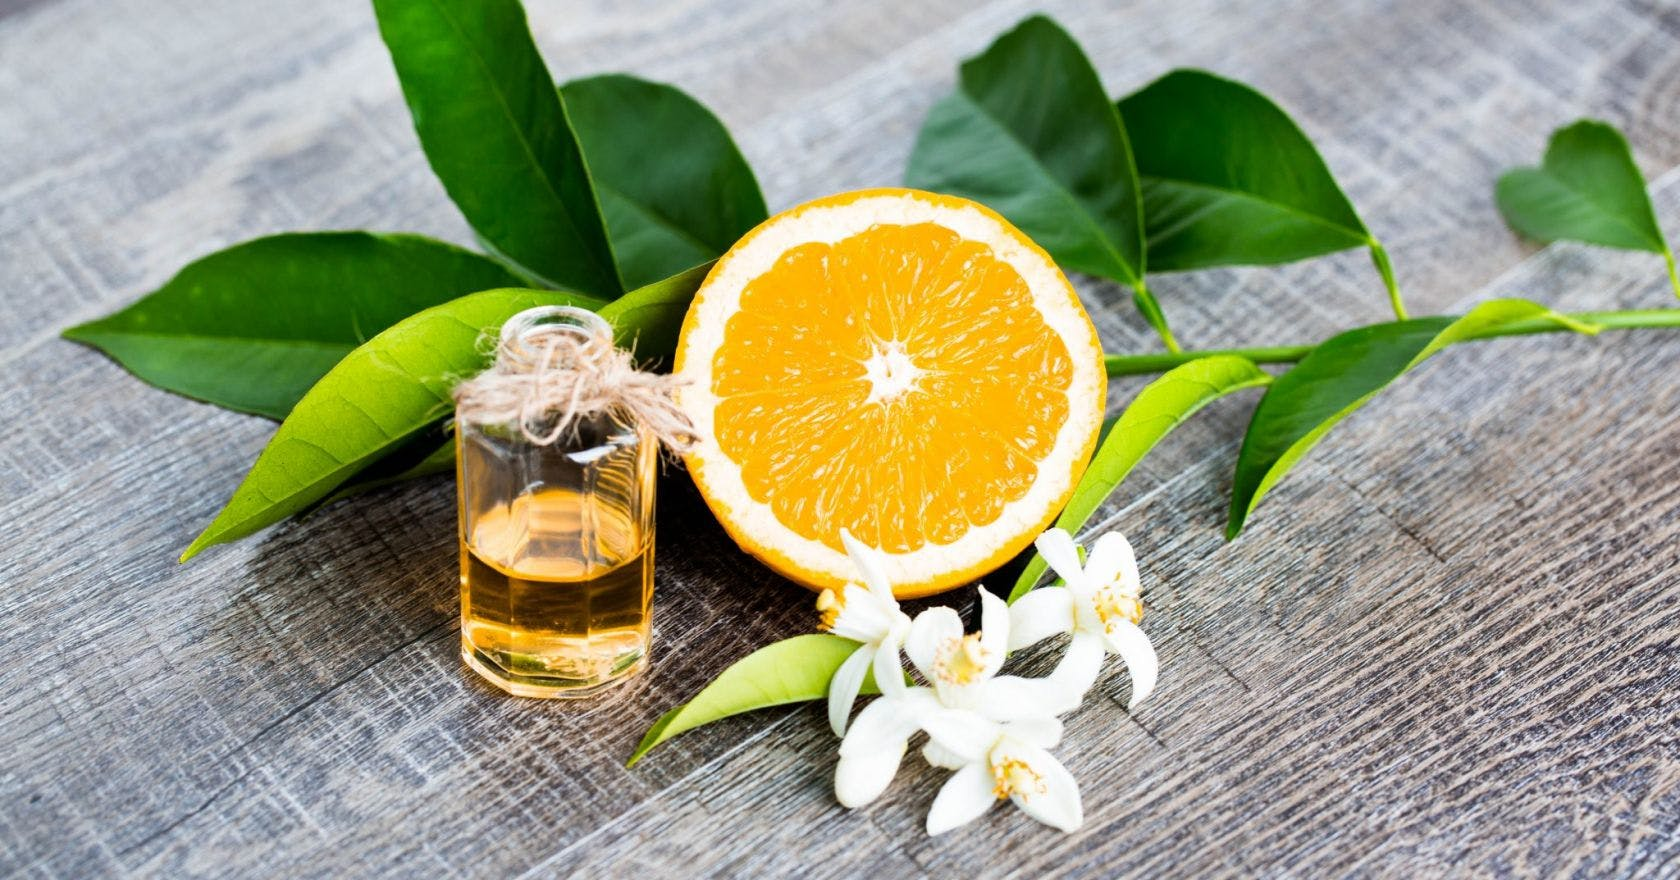 Why orange blossom beauty products are worth adding to your routine